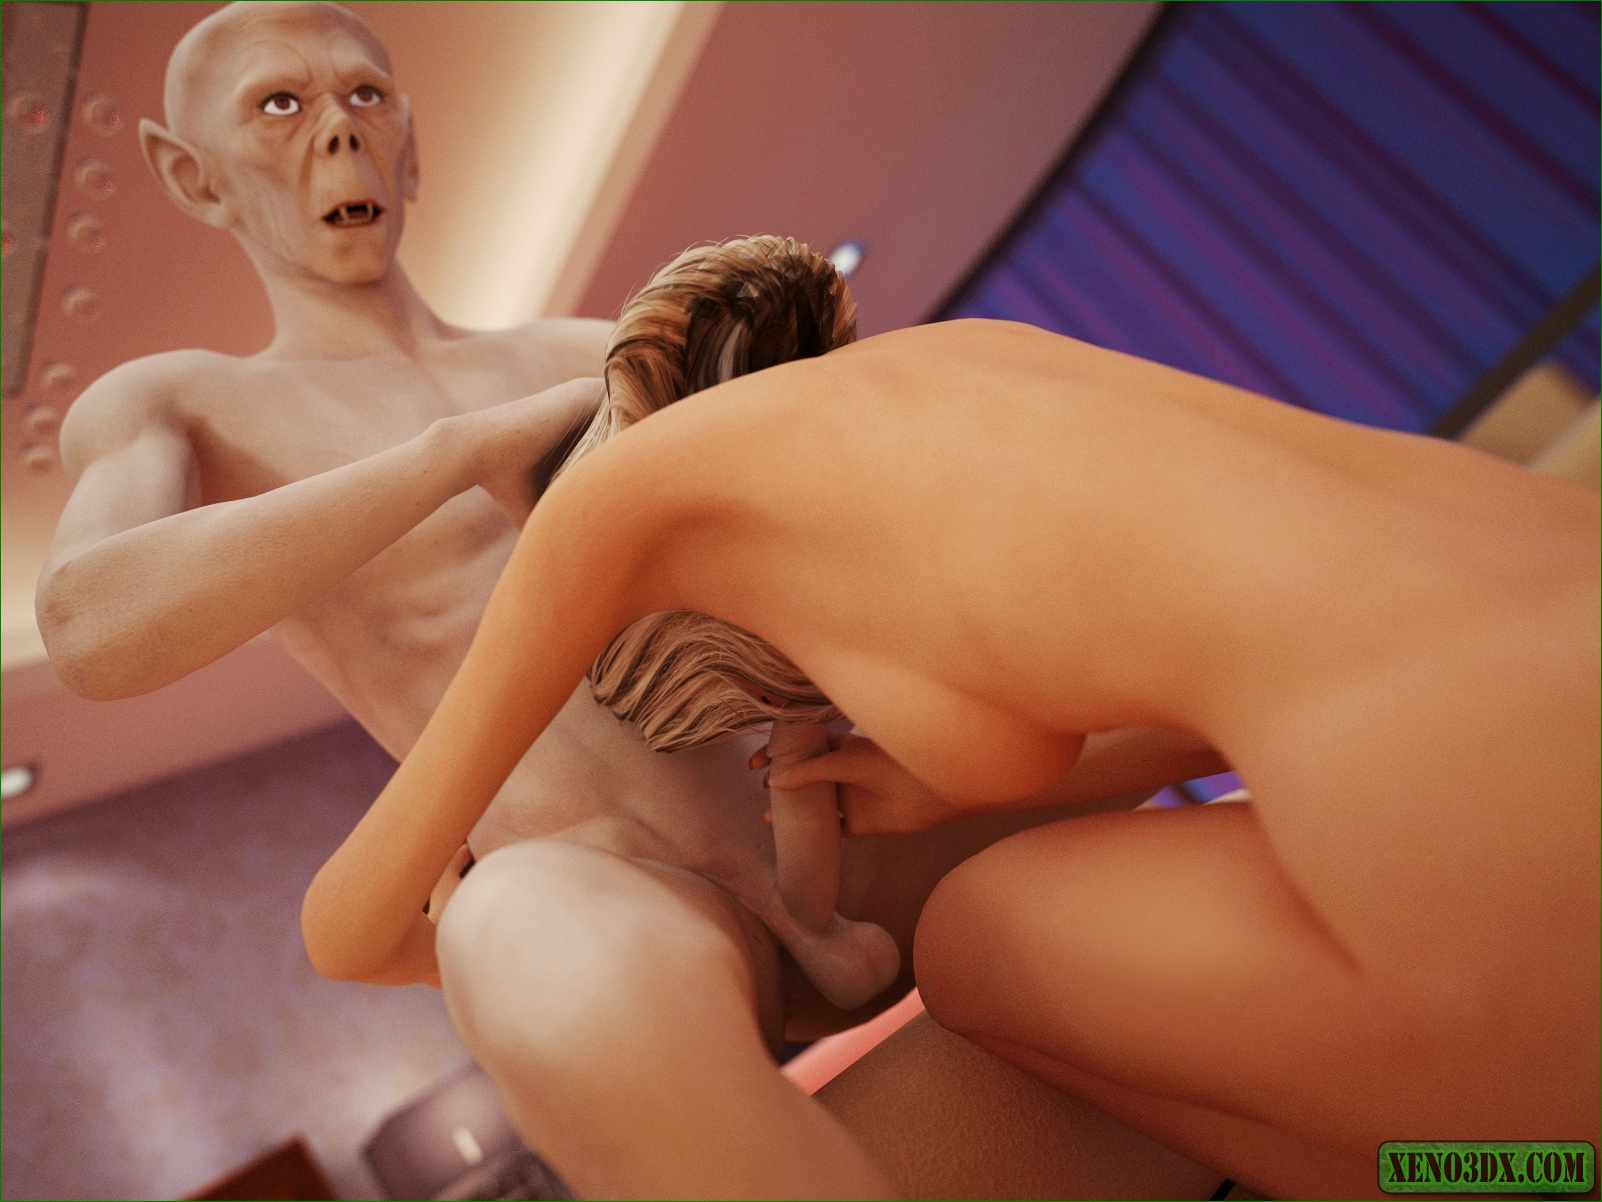 3d monster porn sins pics erotic galleries